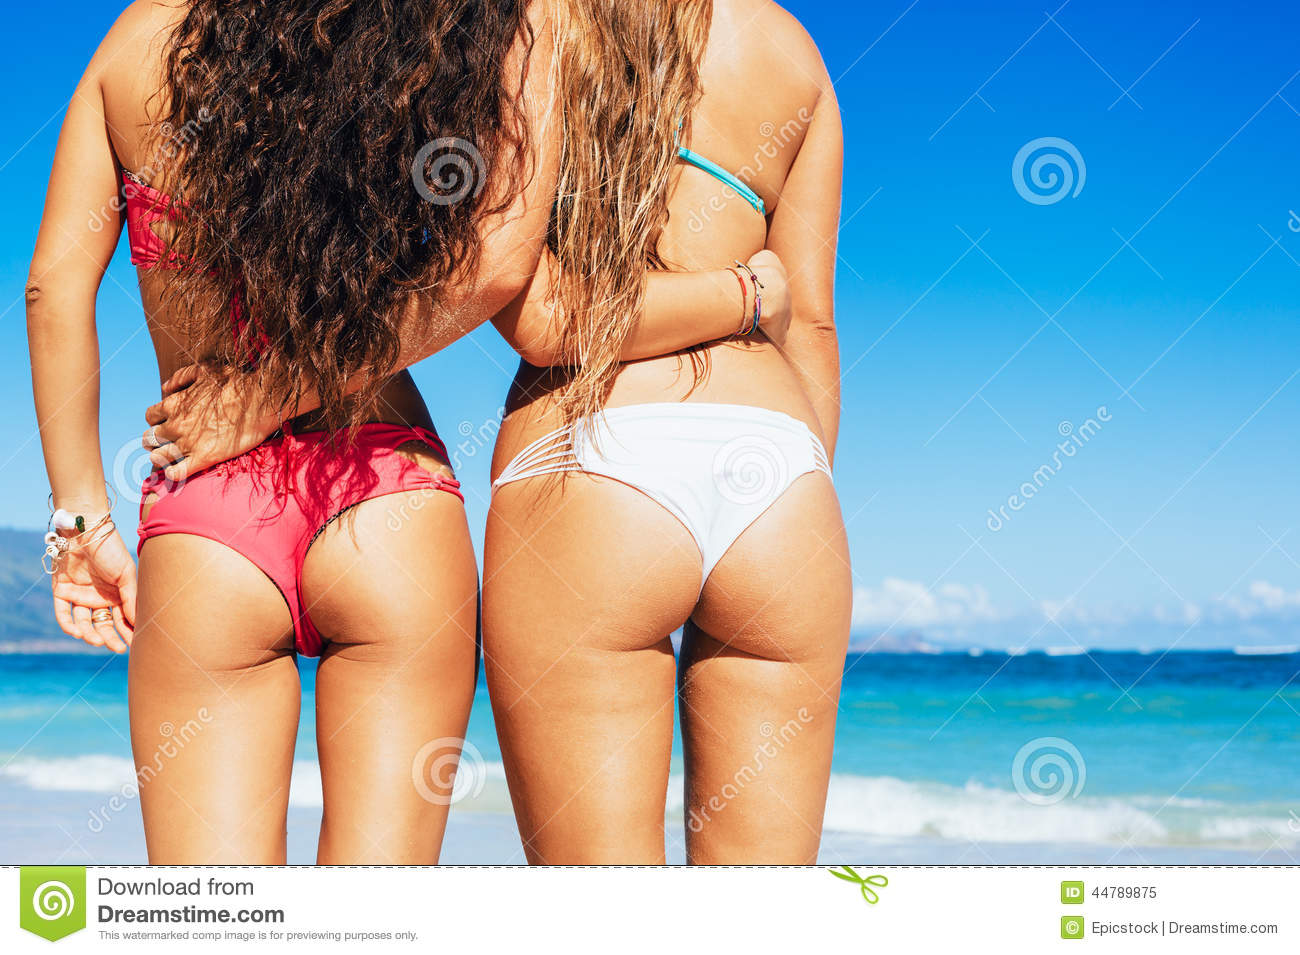 Sexy butts on the beach